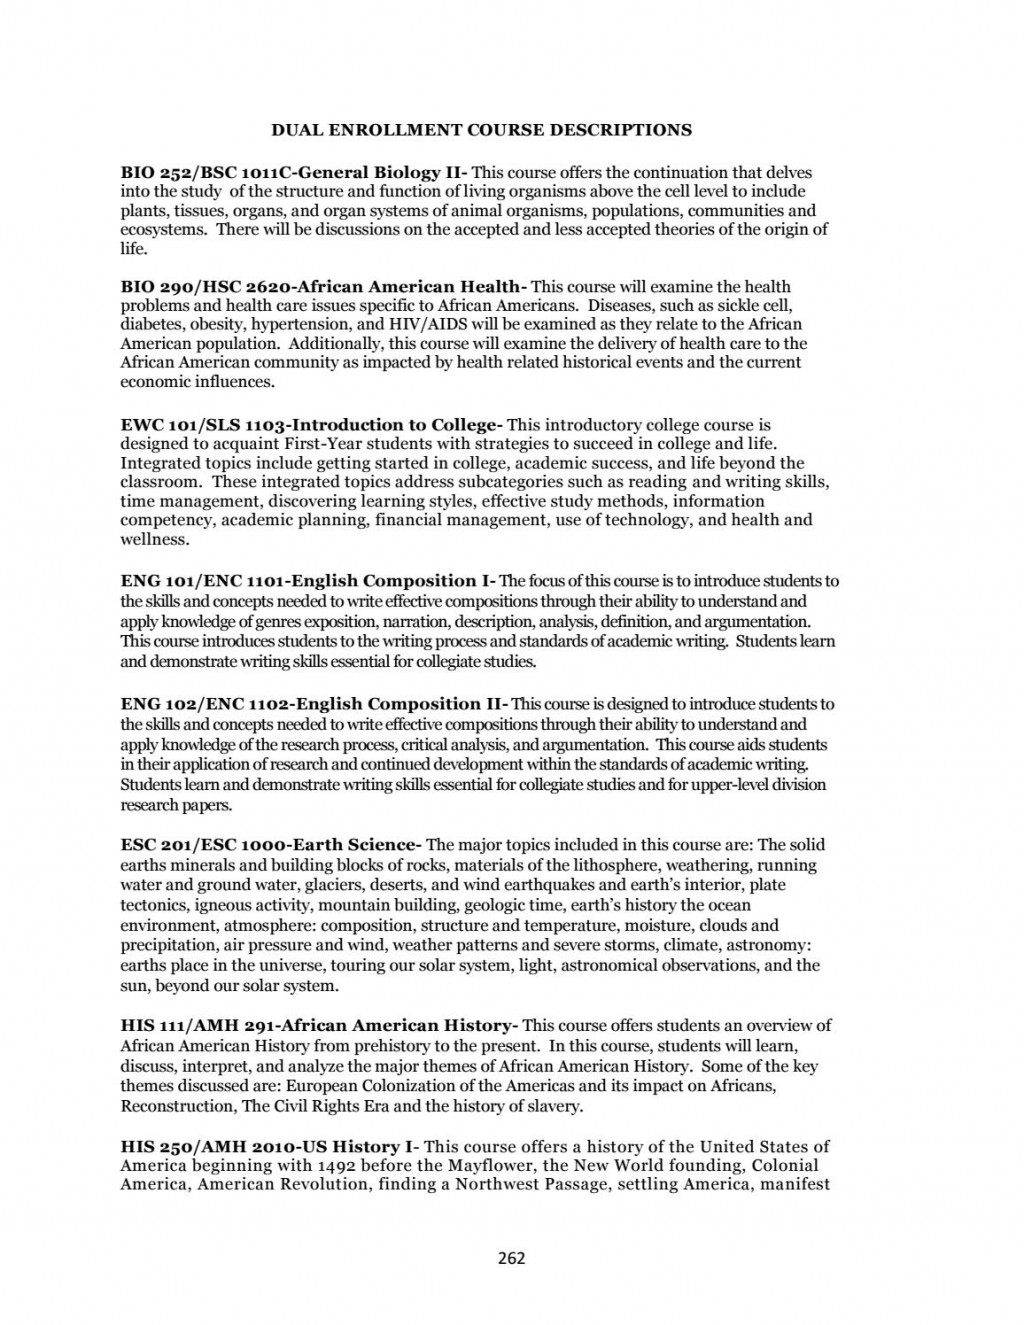 028 Page 259 Animal Rights Research Paper Incredible Topics Topic Ideas Large